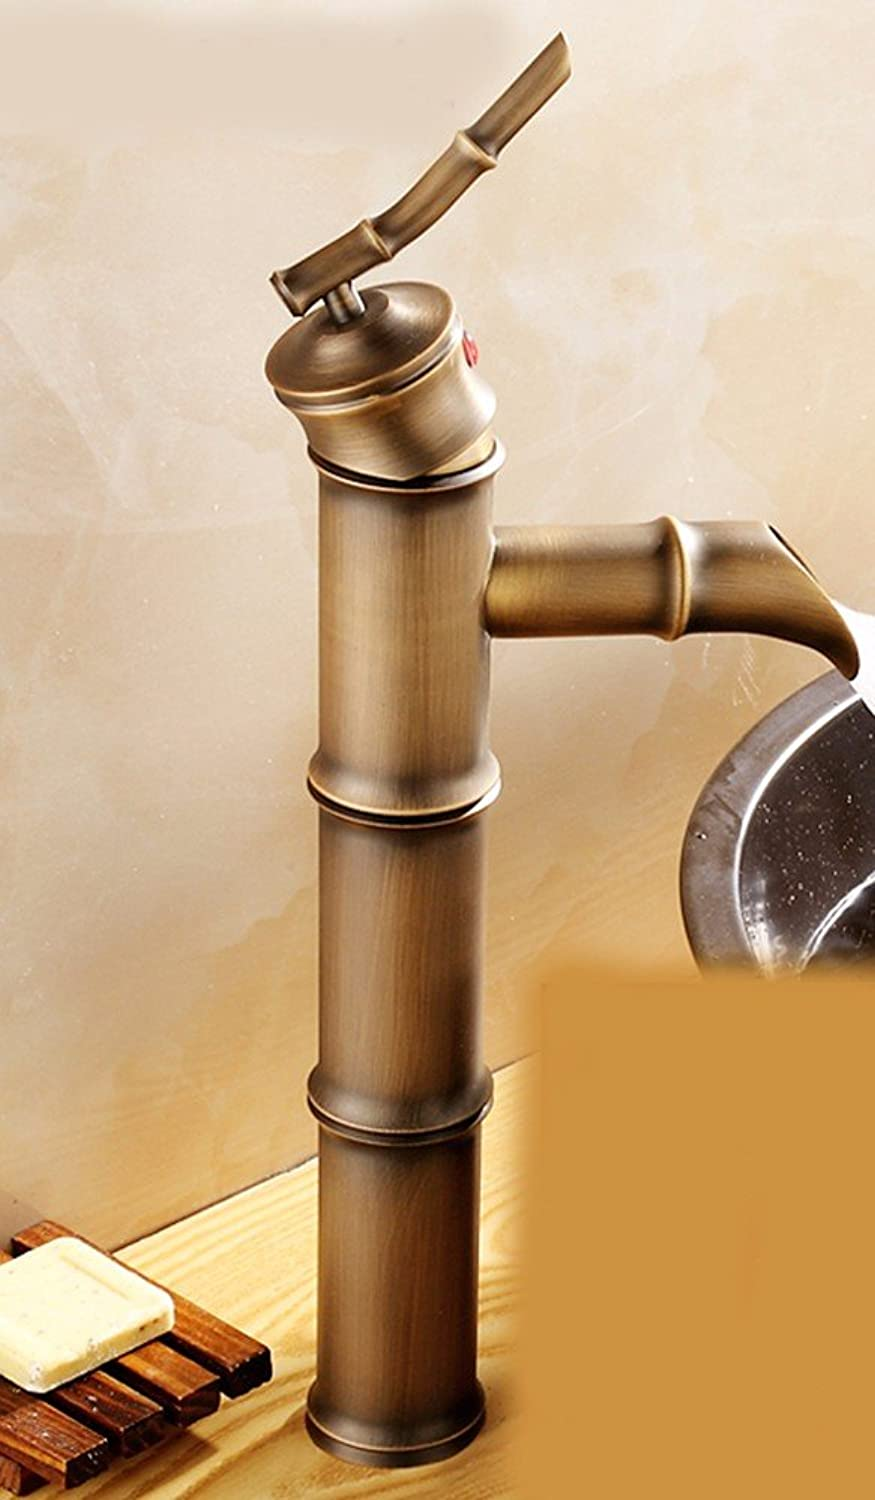 Hlluya Professional Sink Mixer Tap Kitchen Faucet Hot and cold, full copper single handle single hole sink tap the C